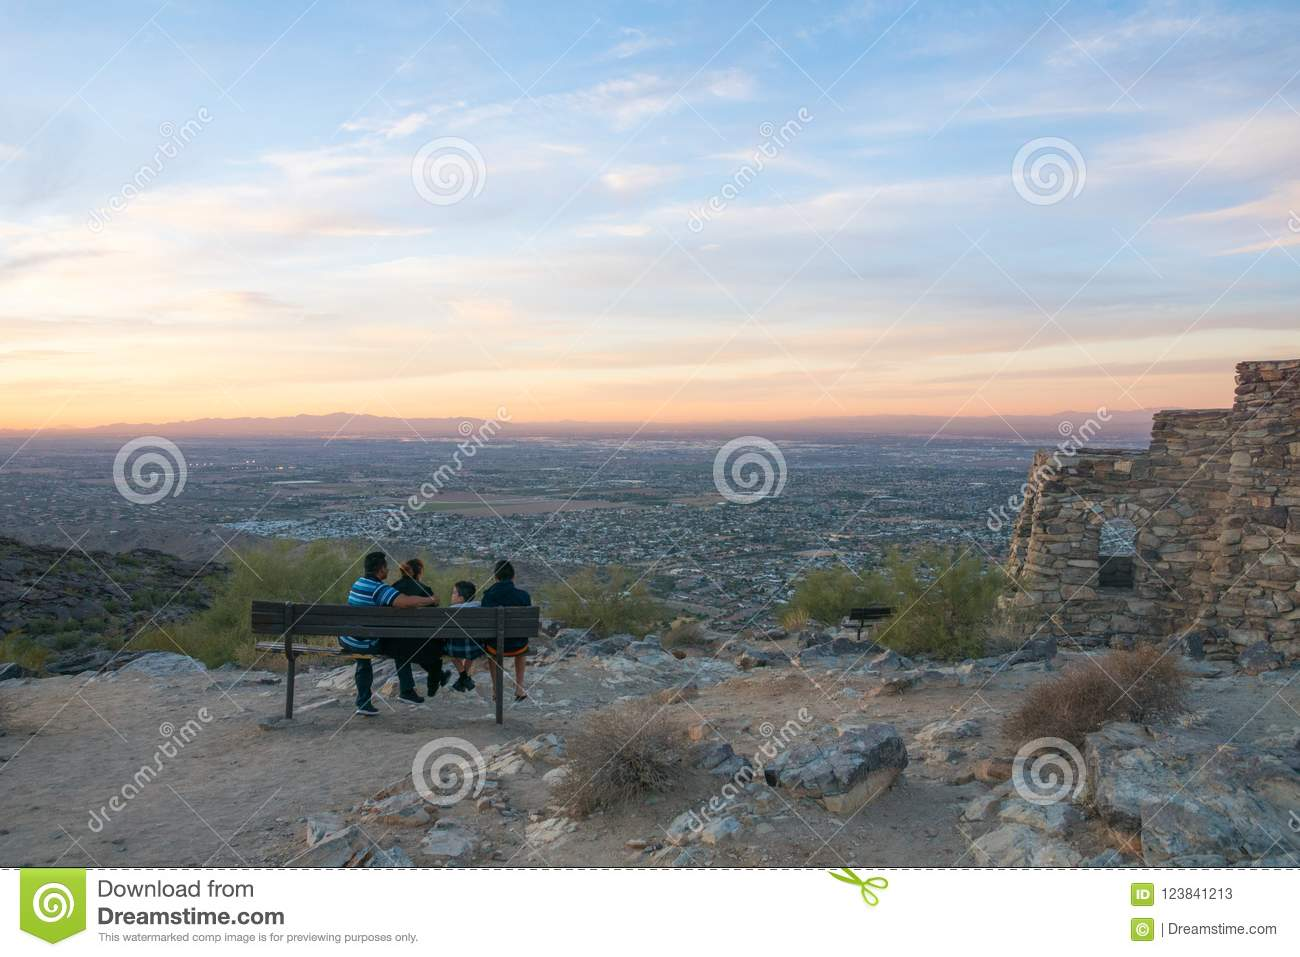 People enjoying the view over Arizona phoenix downtown from the mountains at sunset, usa, panorama